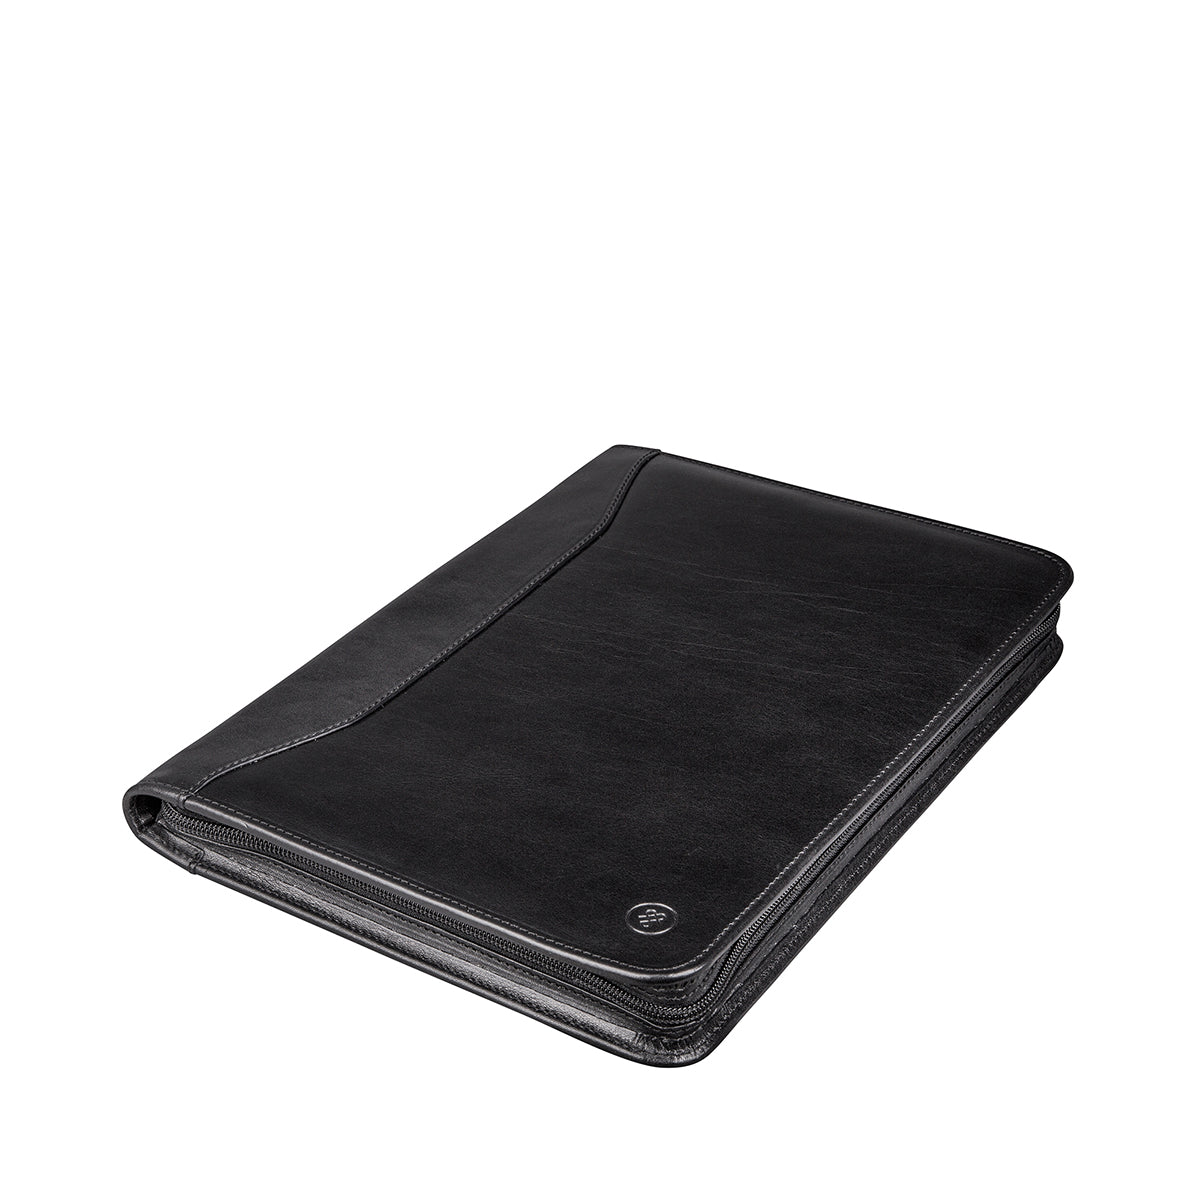 Image 3 of the 'Dimaro' Black Leather Document Case